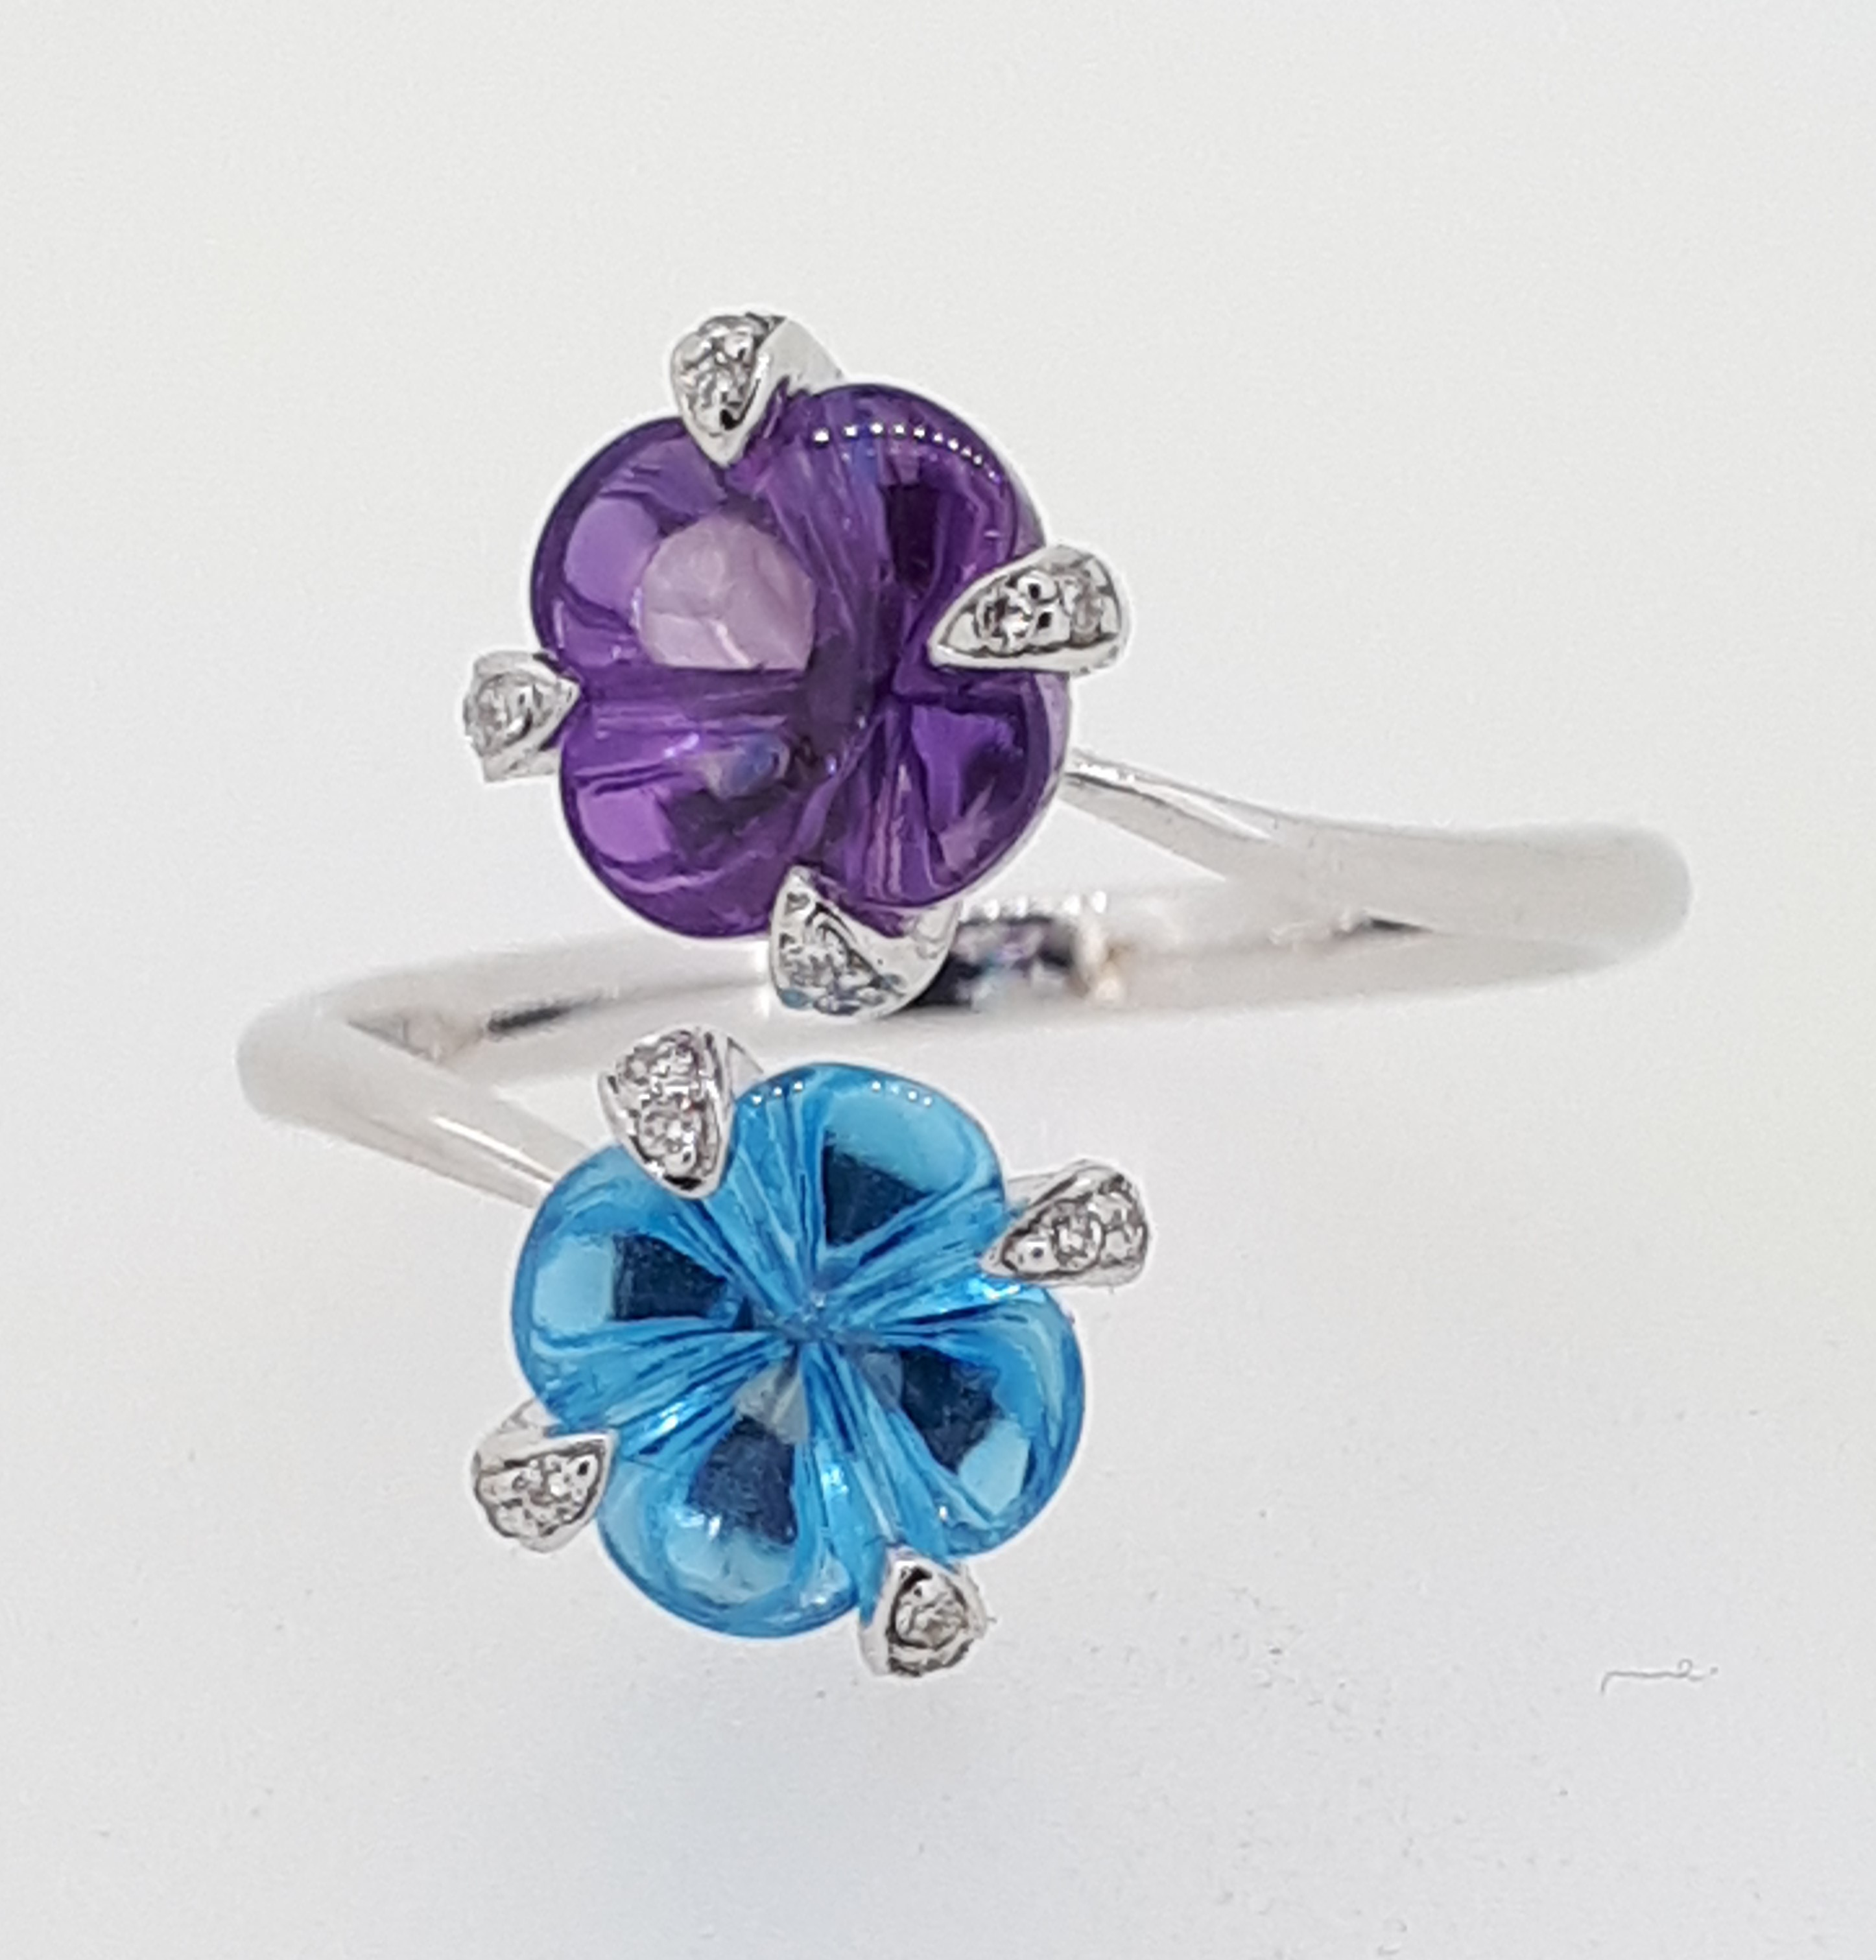 18ct (750) Topaz & Amethyst Crossover Ring with Diamond Claw Setting - Image 4 of 6